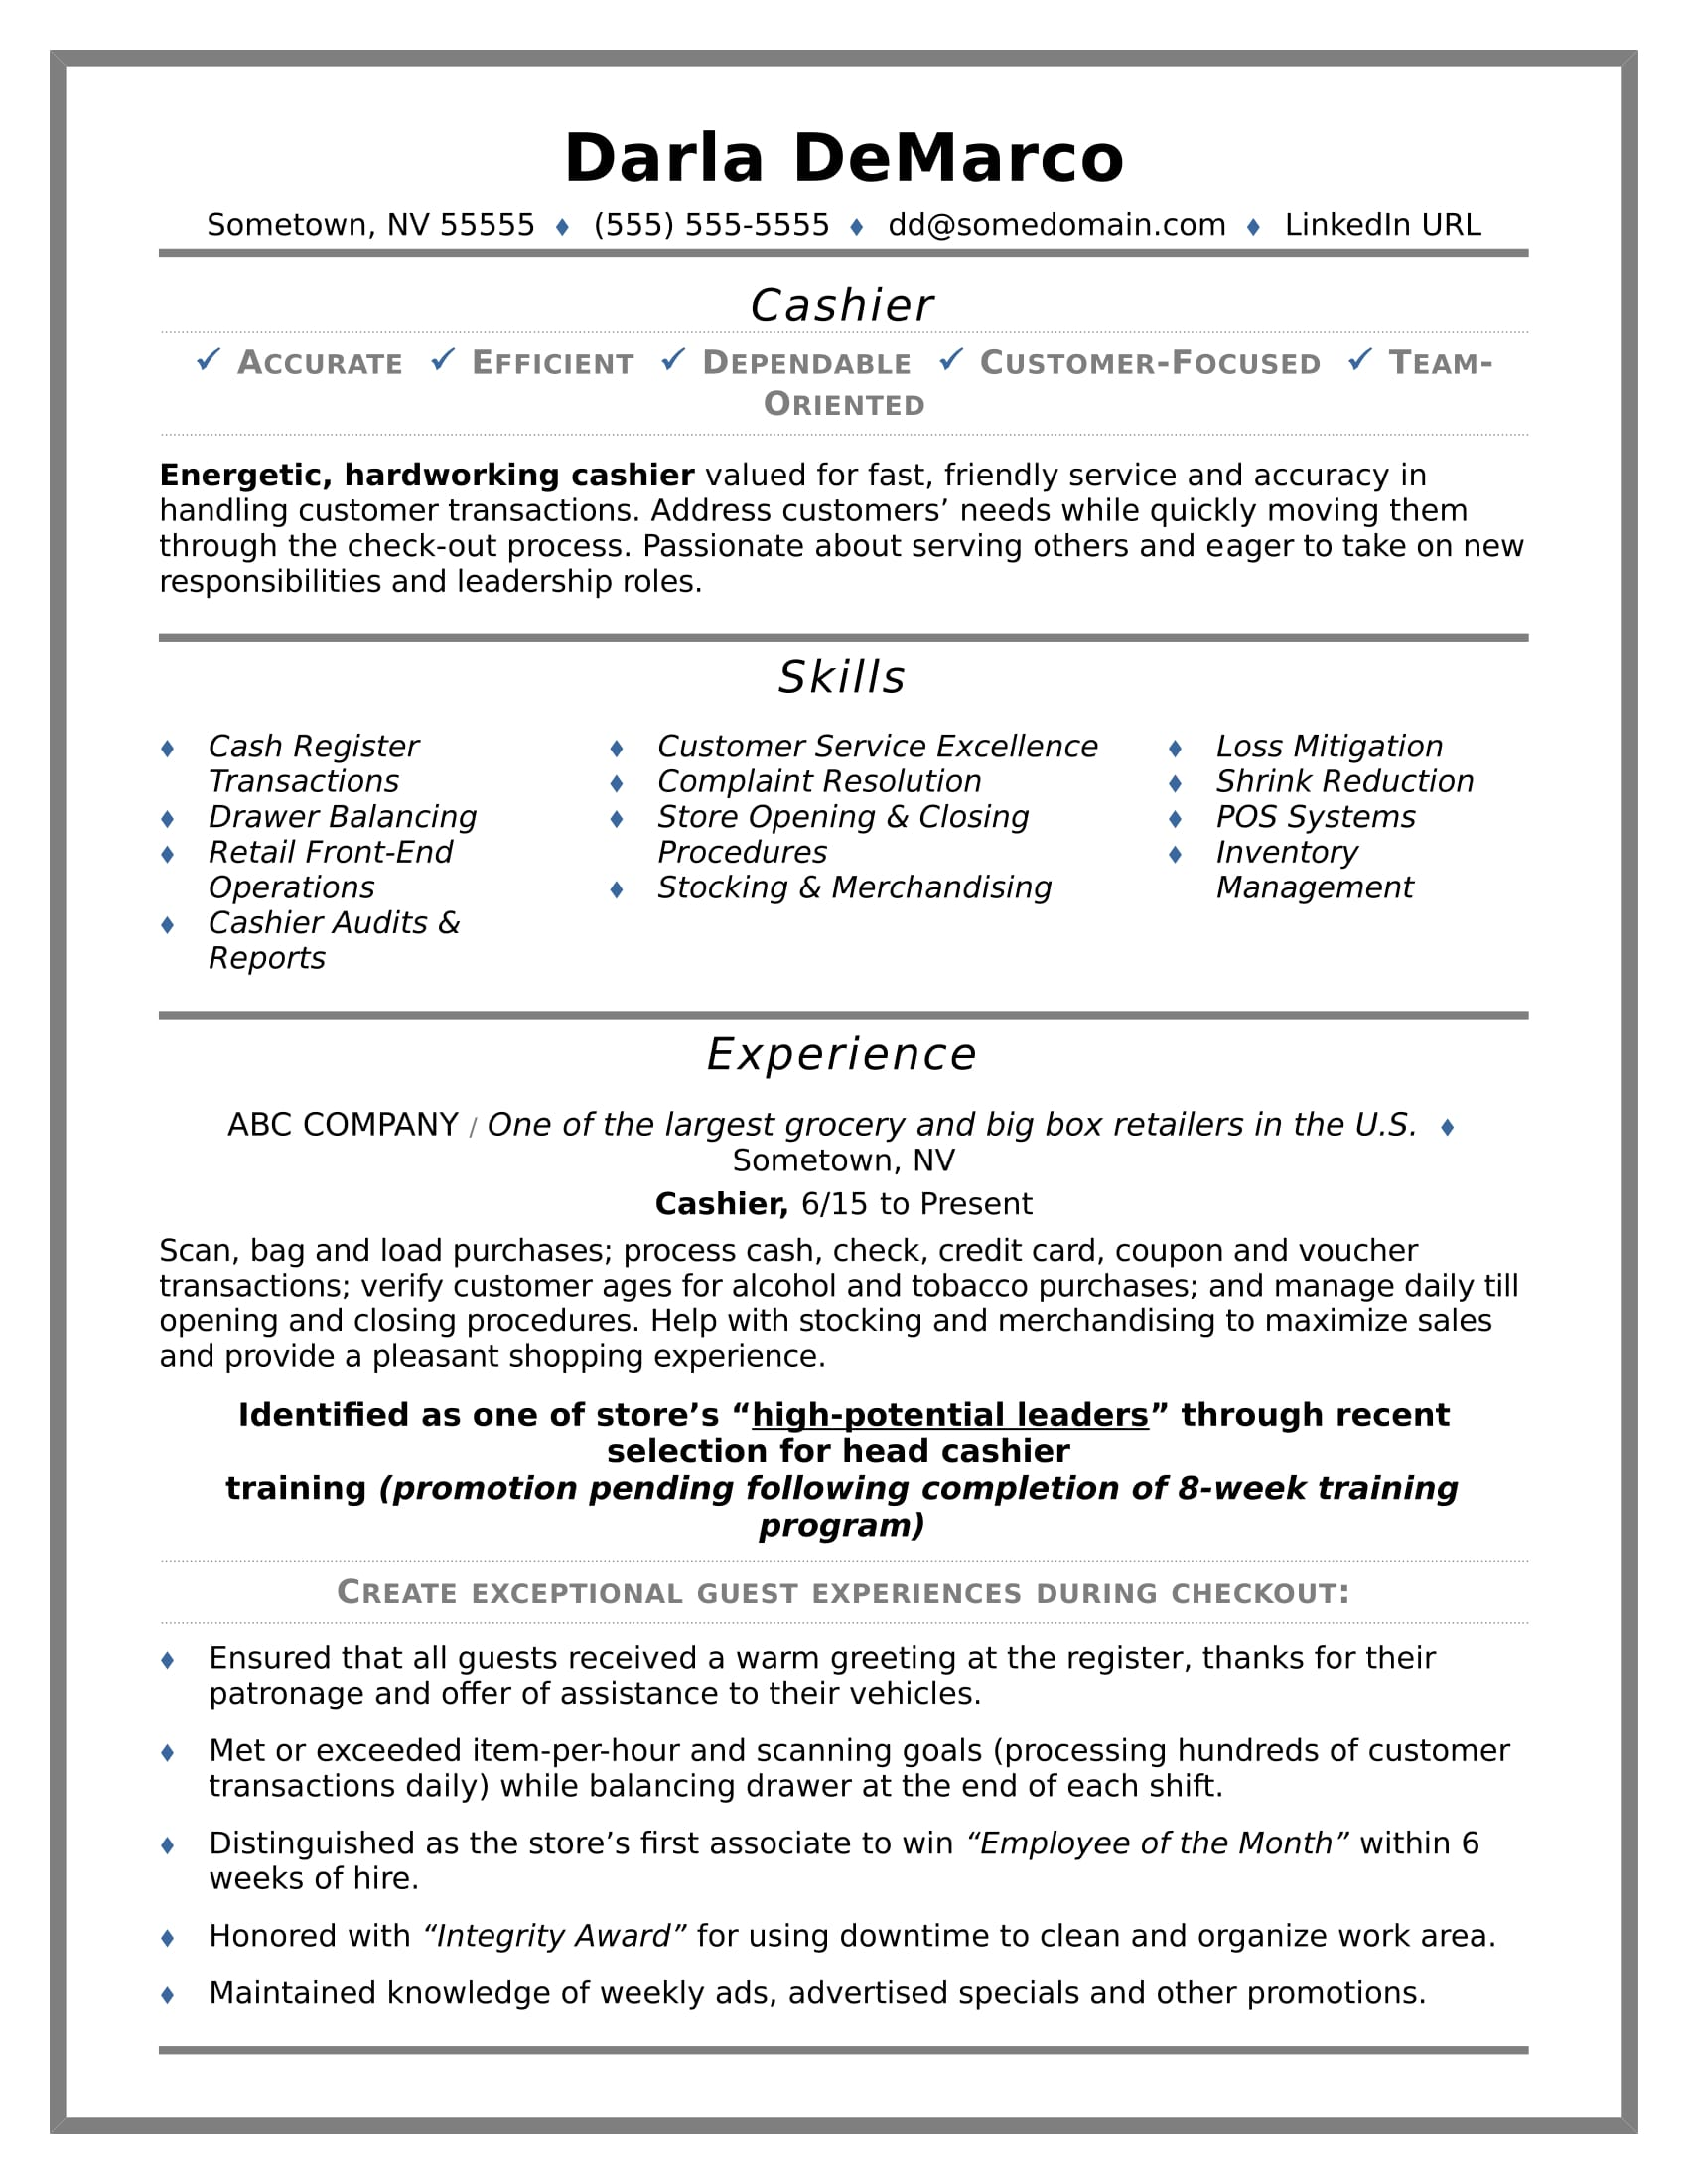 cashier resume sample monster need template private estate manager materials for Resume Need A Resume Template